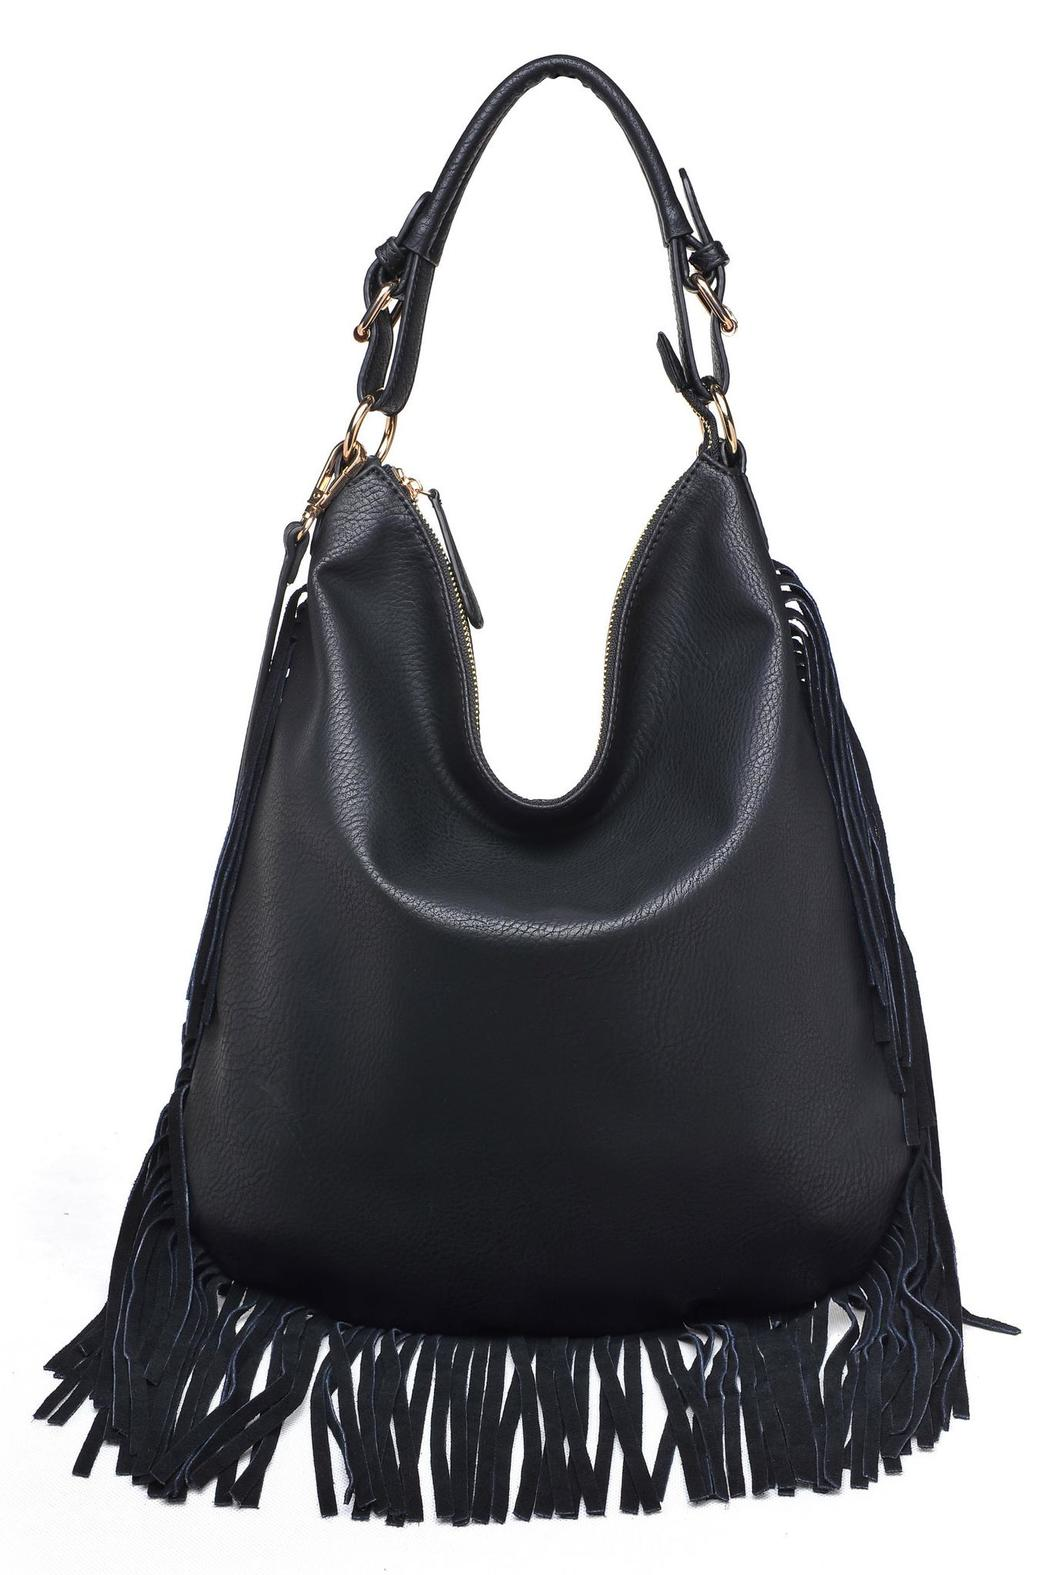 Moda Luxe Ely Boho Bag Front Cropped Image